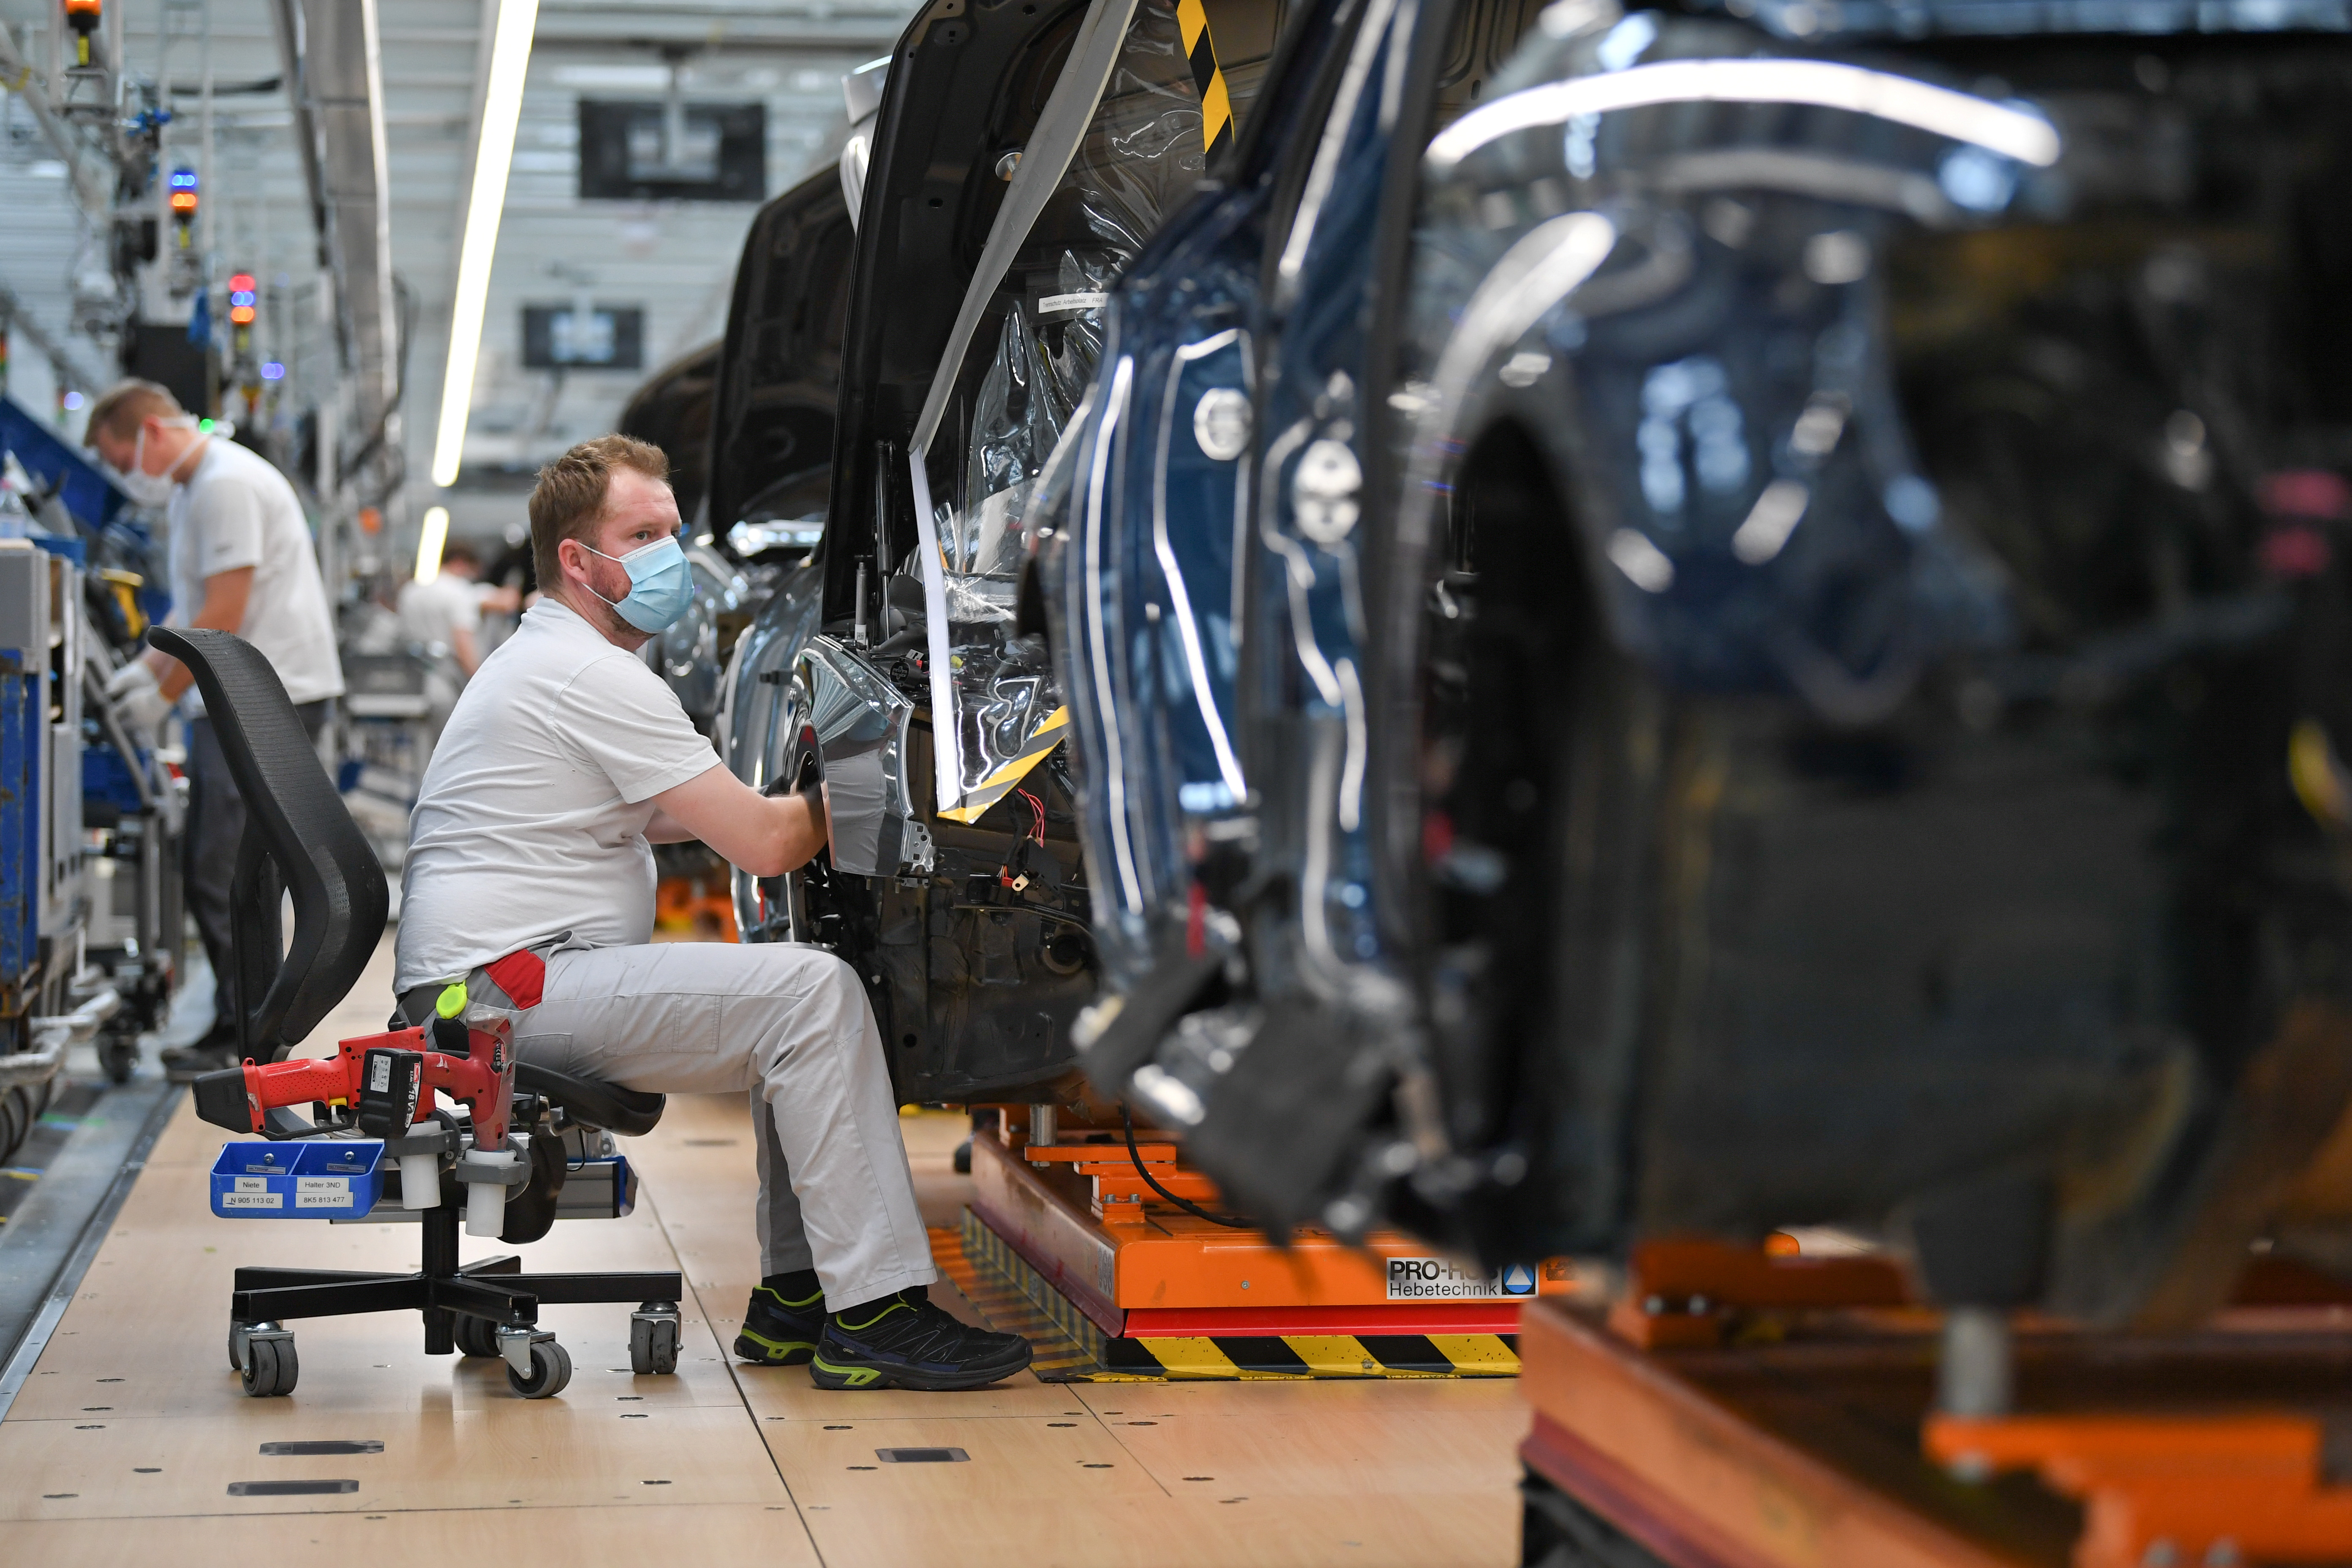 FILE PHOTO: A production line of German car manufacturer Audi, amid the spread of the coronavirus disease (COVID-19) in Ingolstadt, Germany, June 3, 2020. REUTERS/Andreas Gebert